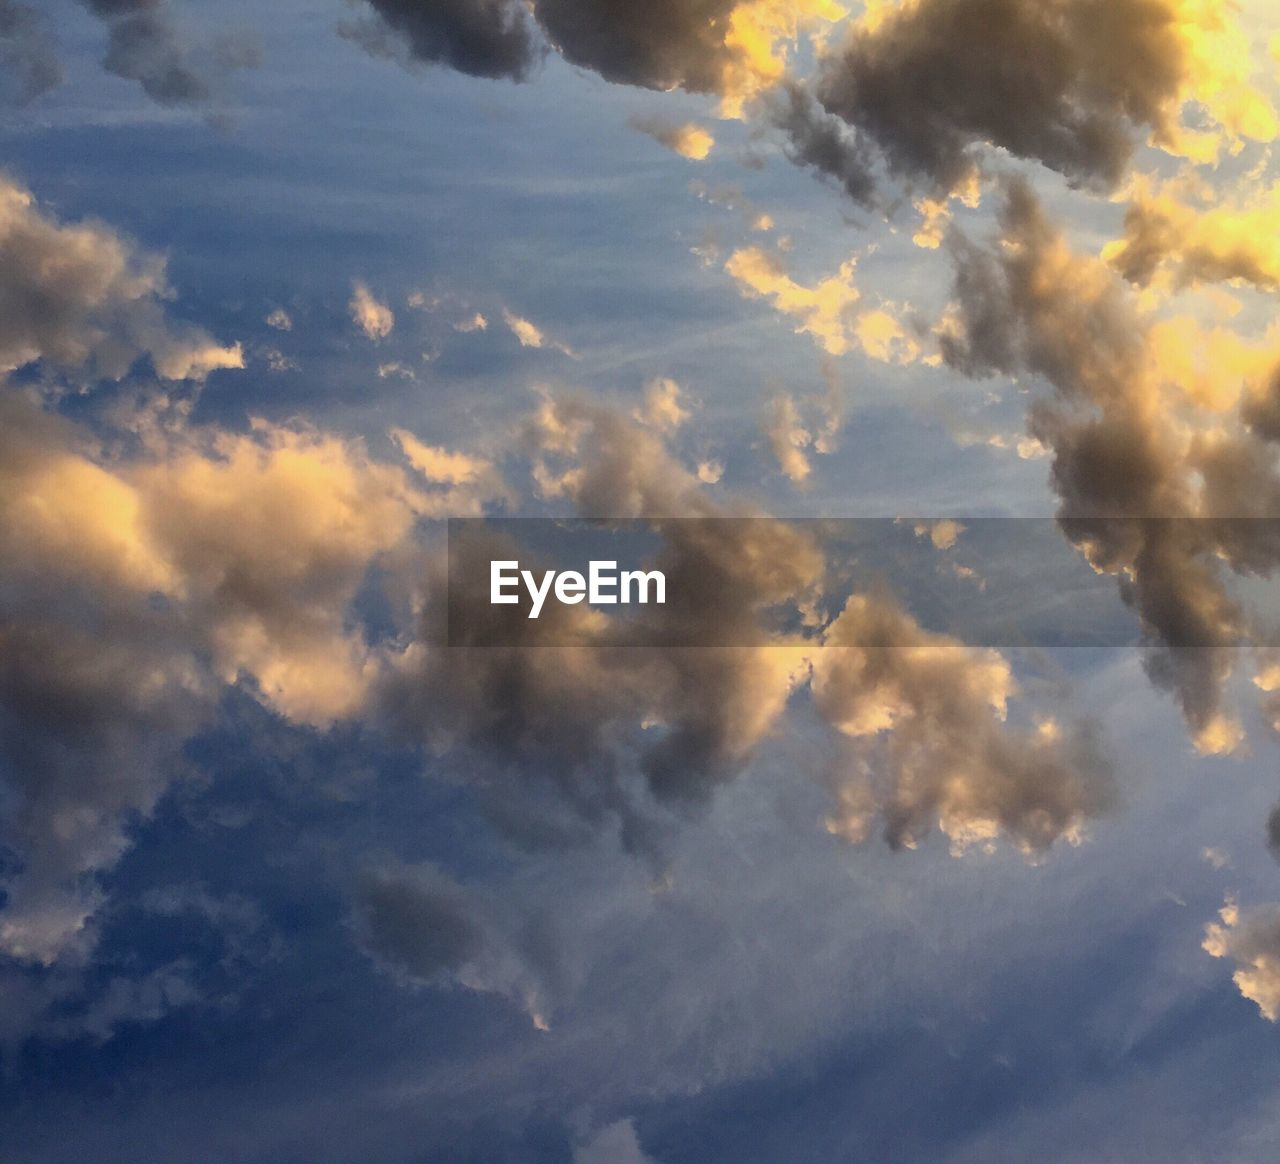 sky, cloud - sky, nature, beauty in nature, scenics, low angle view, cloudscape, sky only, tranquility, tranquil scene, backgrounds, no people, outdoors, full frame, day, blue, sunset